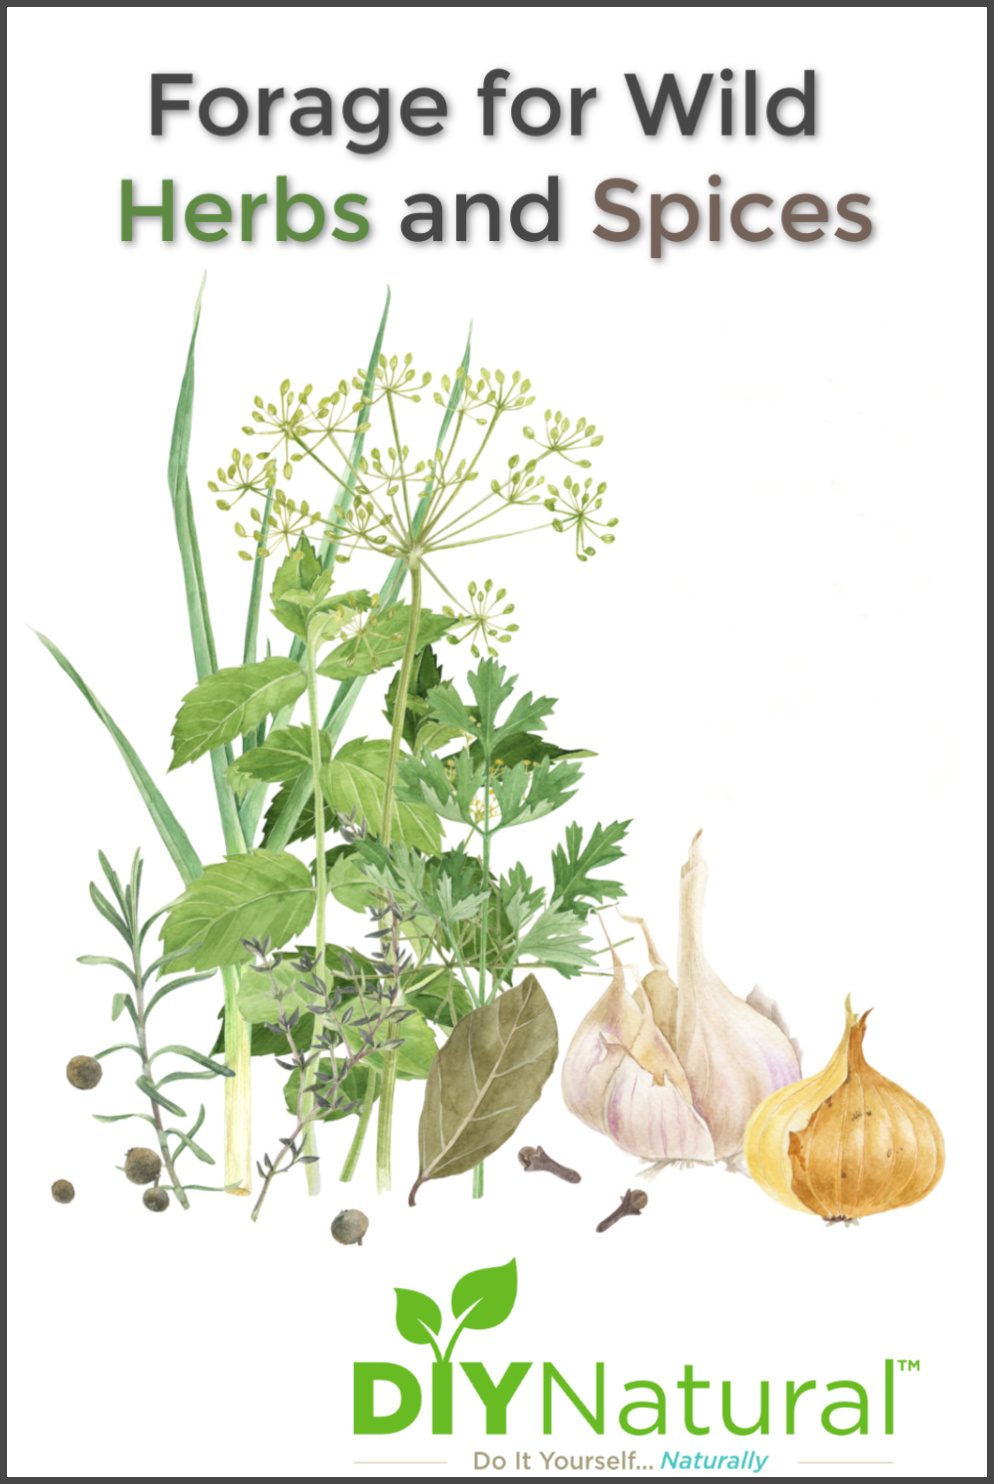 Forage Wild Spices: A List of Herbs and Spices You Can Find And Use